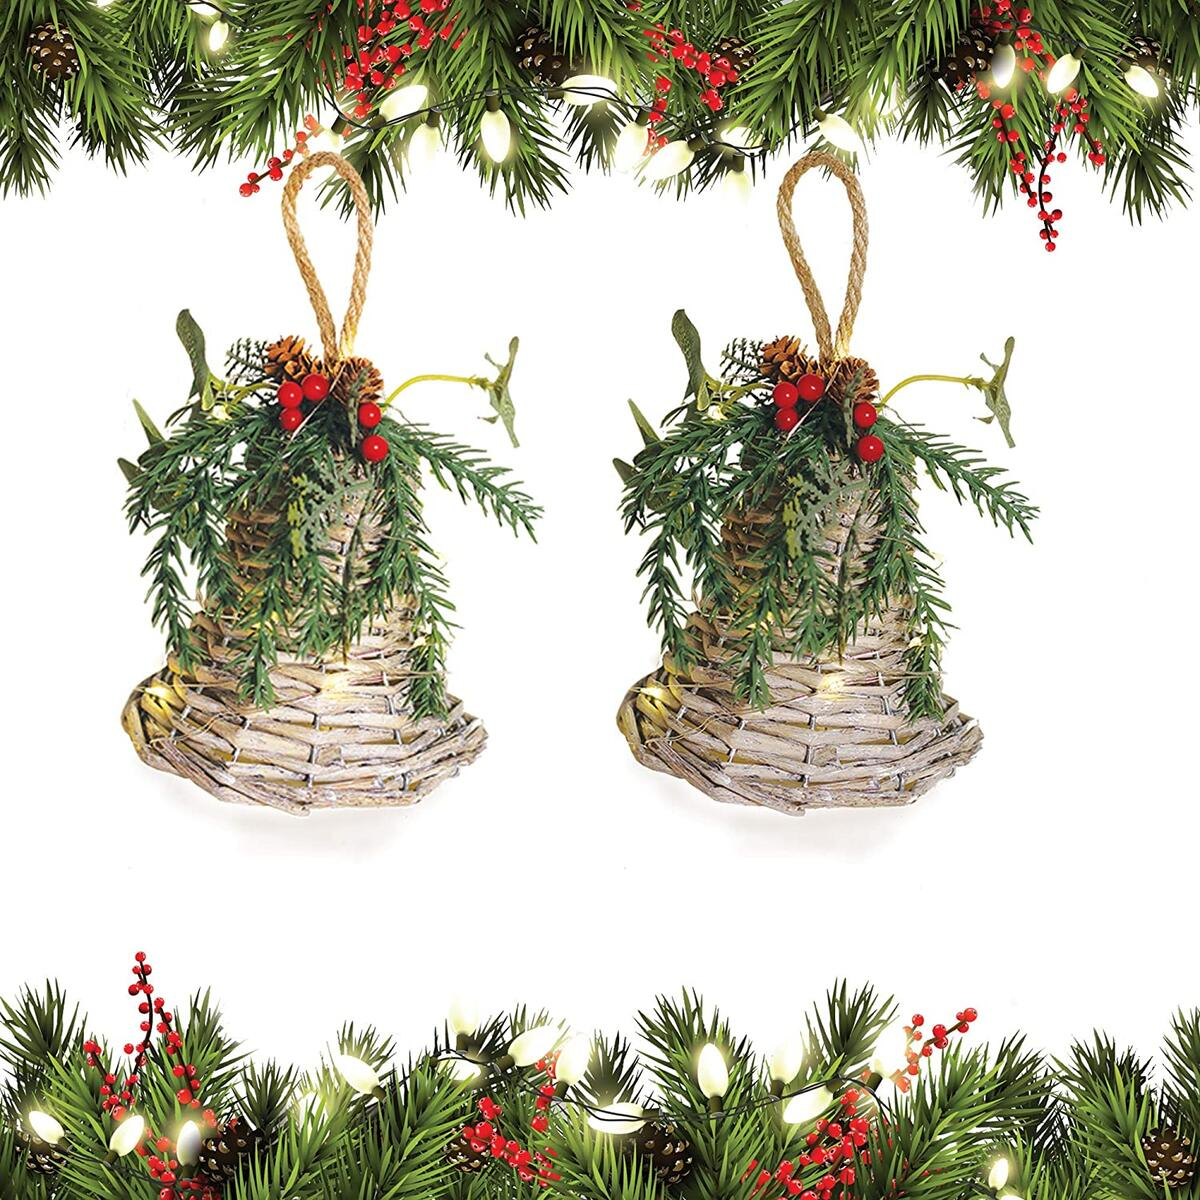 Wicker Hanging Bell Ornaments for Christmas Decoration